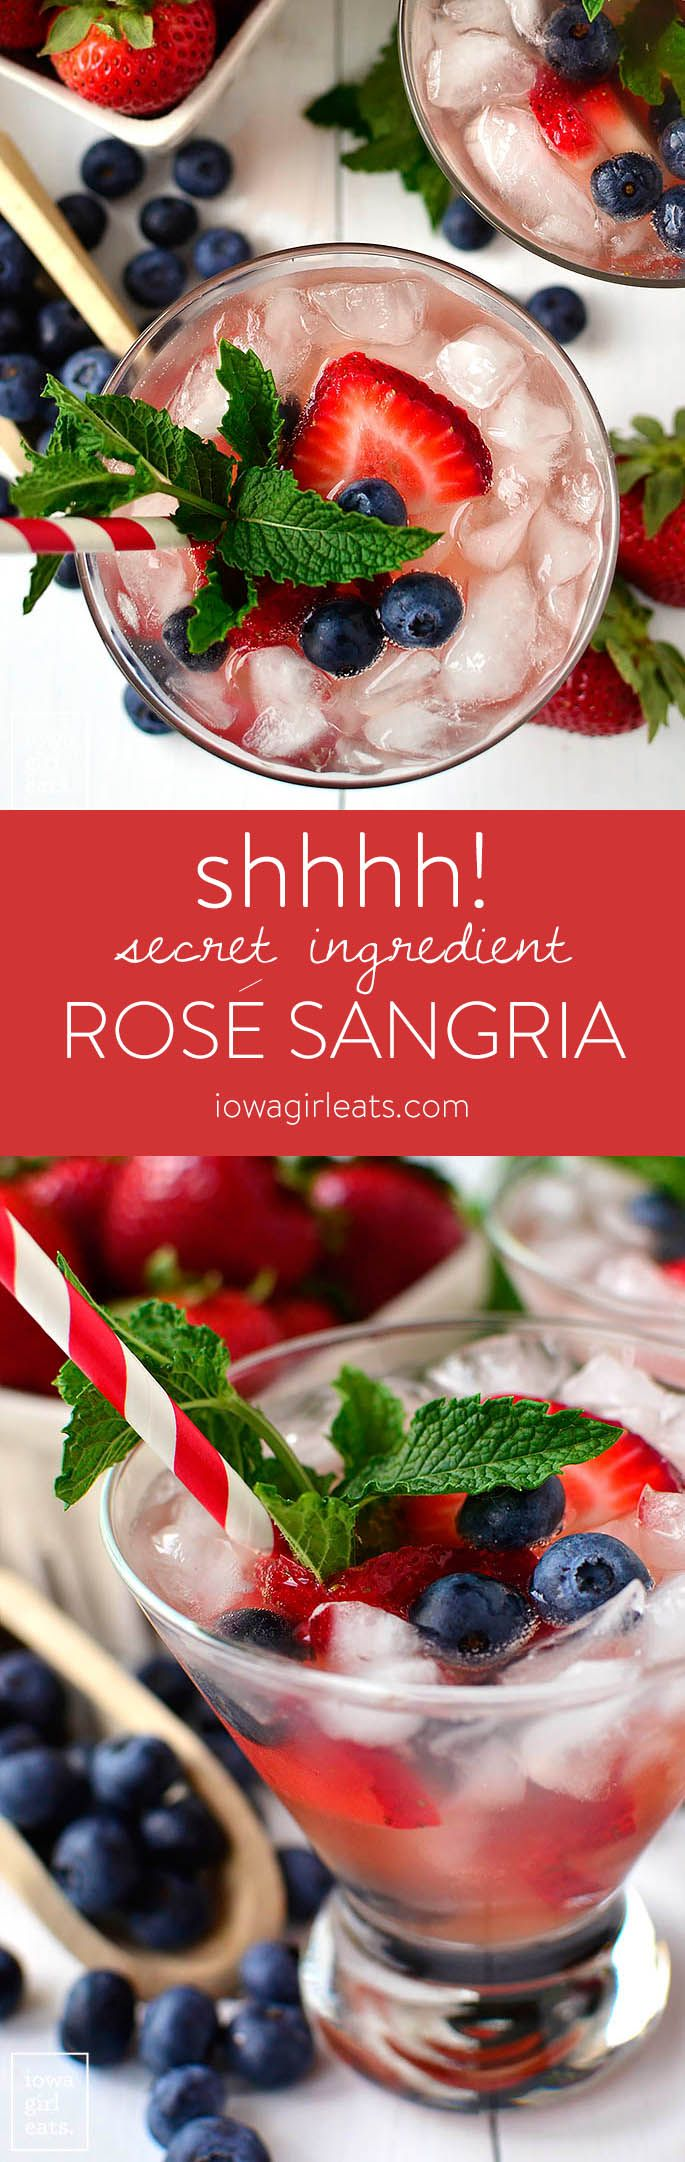 Secret Ingredient Rosé Sangria is the perfect drink to cool off with when temperatures start to soar. Not too sweet, and livened up by a secret ingredient! | iowagirleats.com